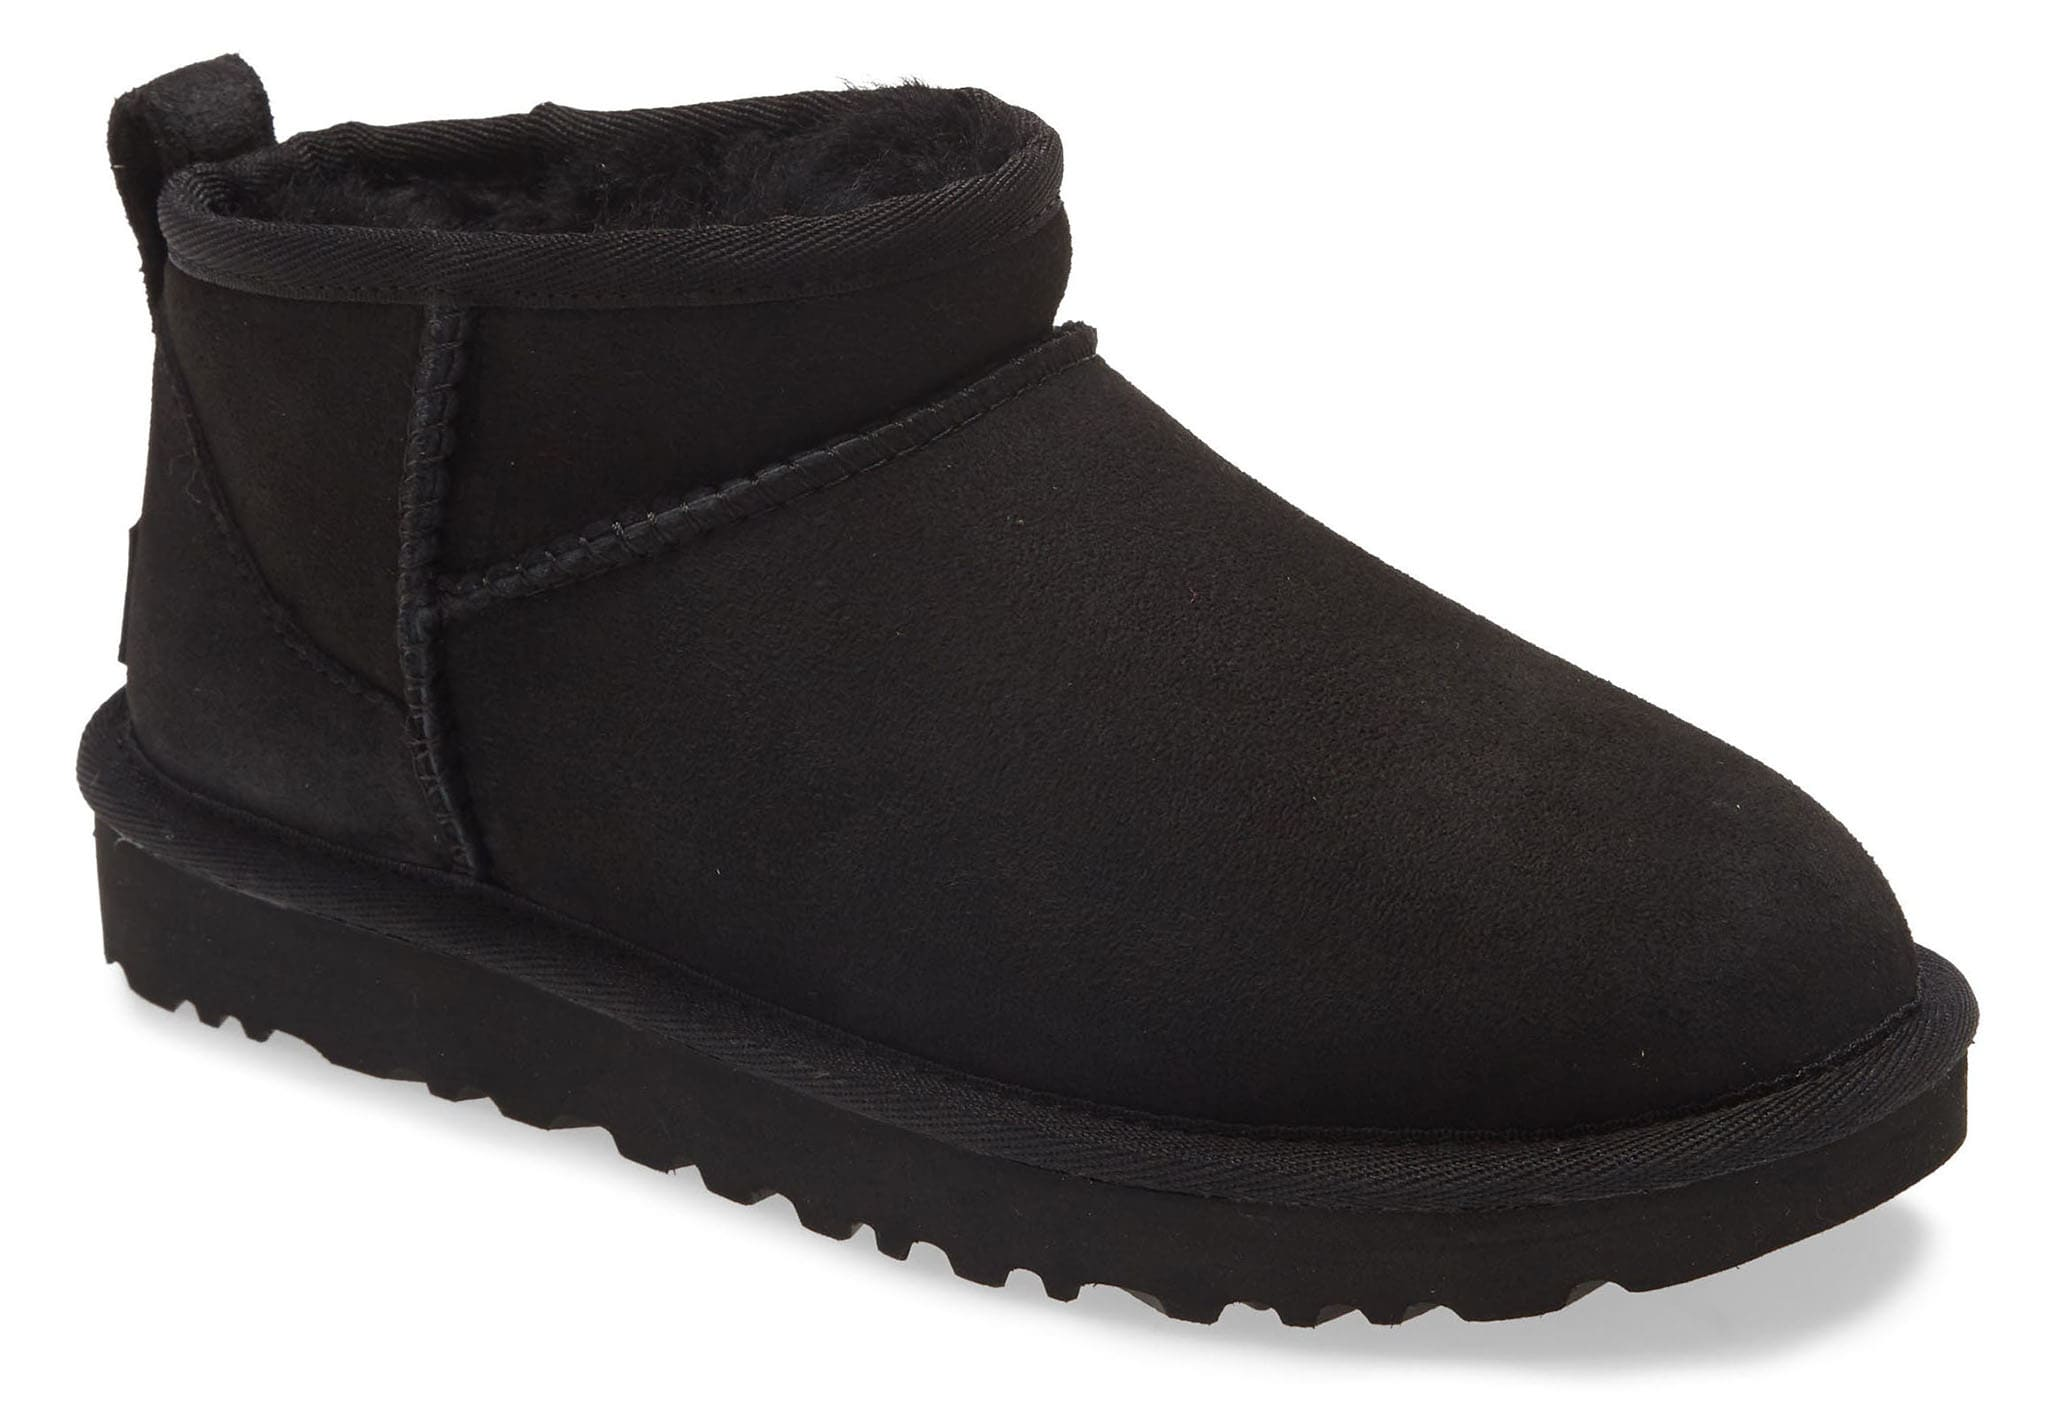 An ultra short shaft adds a twist to the classic UGG boot silhouette